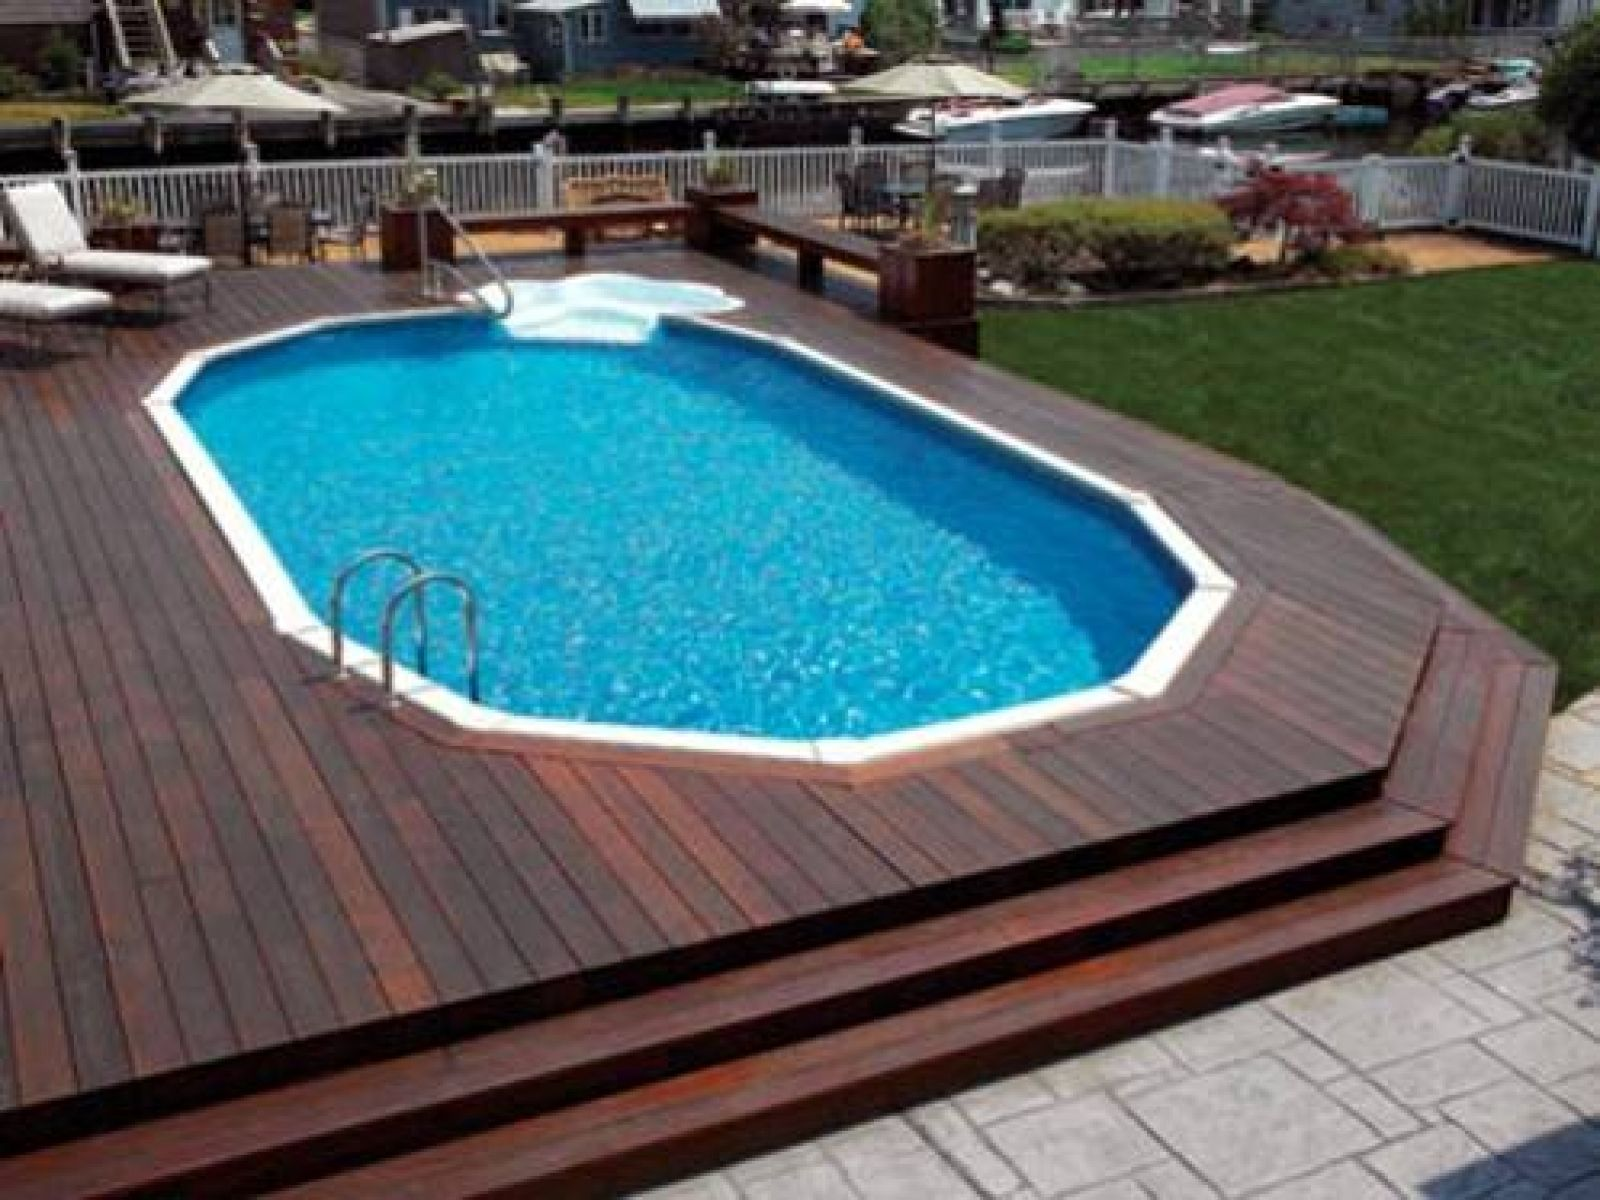 Above Ground Pool Deck Paver Amazing Above Ground Pool Ideas For Relax Time Amusing Backyard